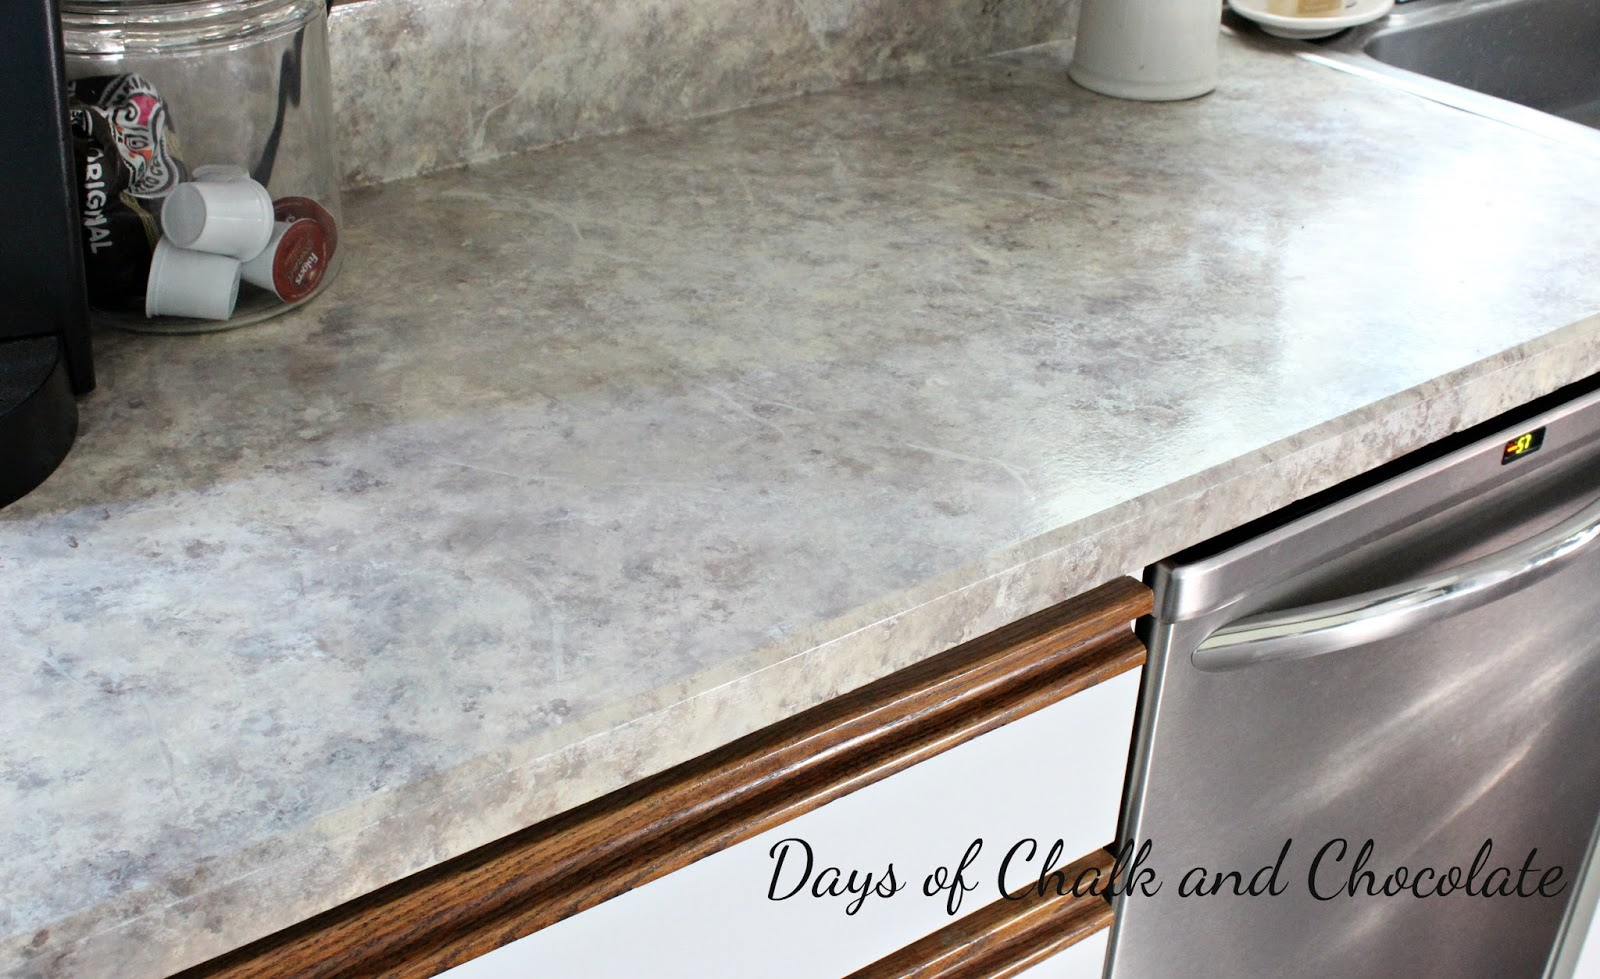 Painting kitchen countertops to look like granite - Awesome Painted Faux Stone Countertops Days Of Chalk And Chocolate With Painting Countertops To Look Like Granite